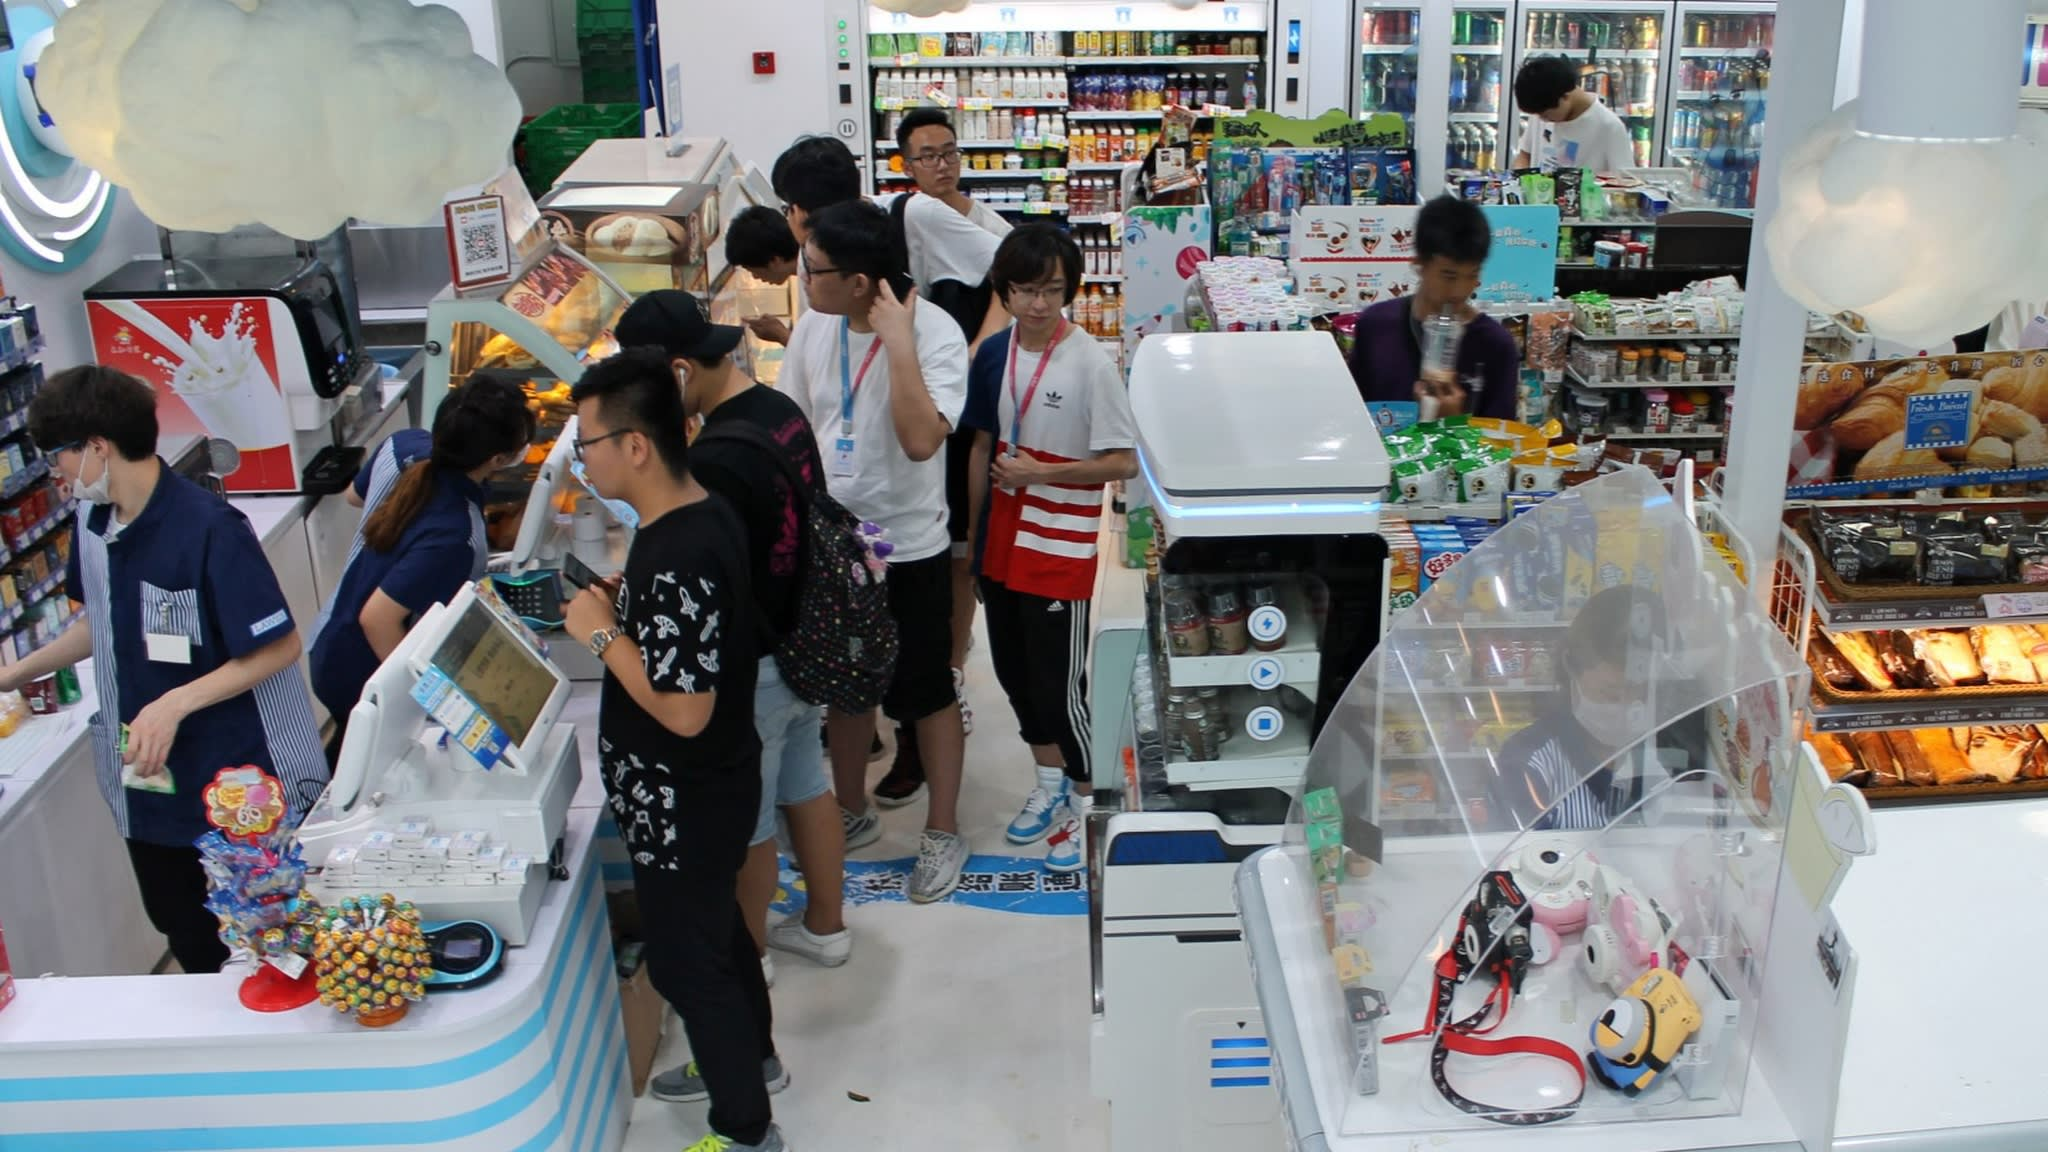 A Lawson store which collaborated with Bilibili